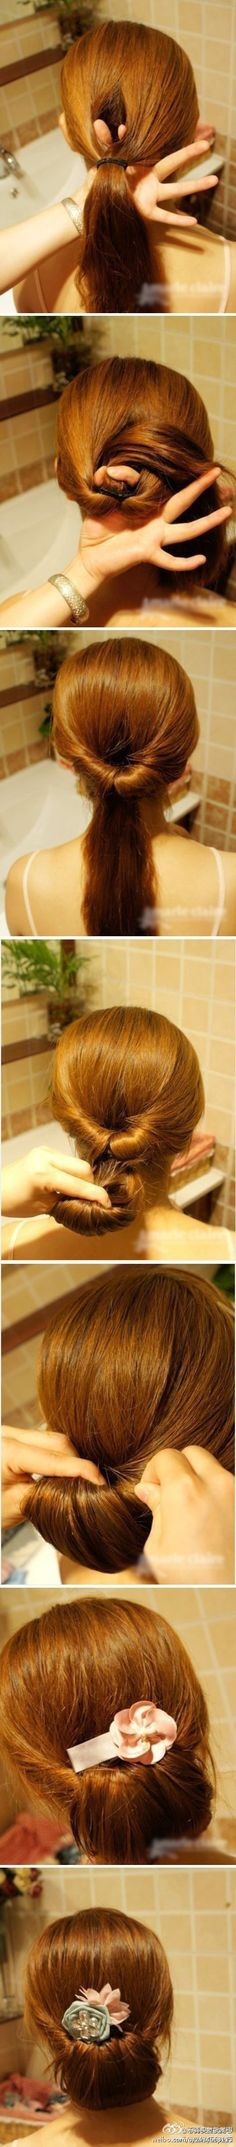 Fairly simple up-do